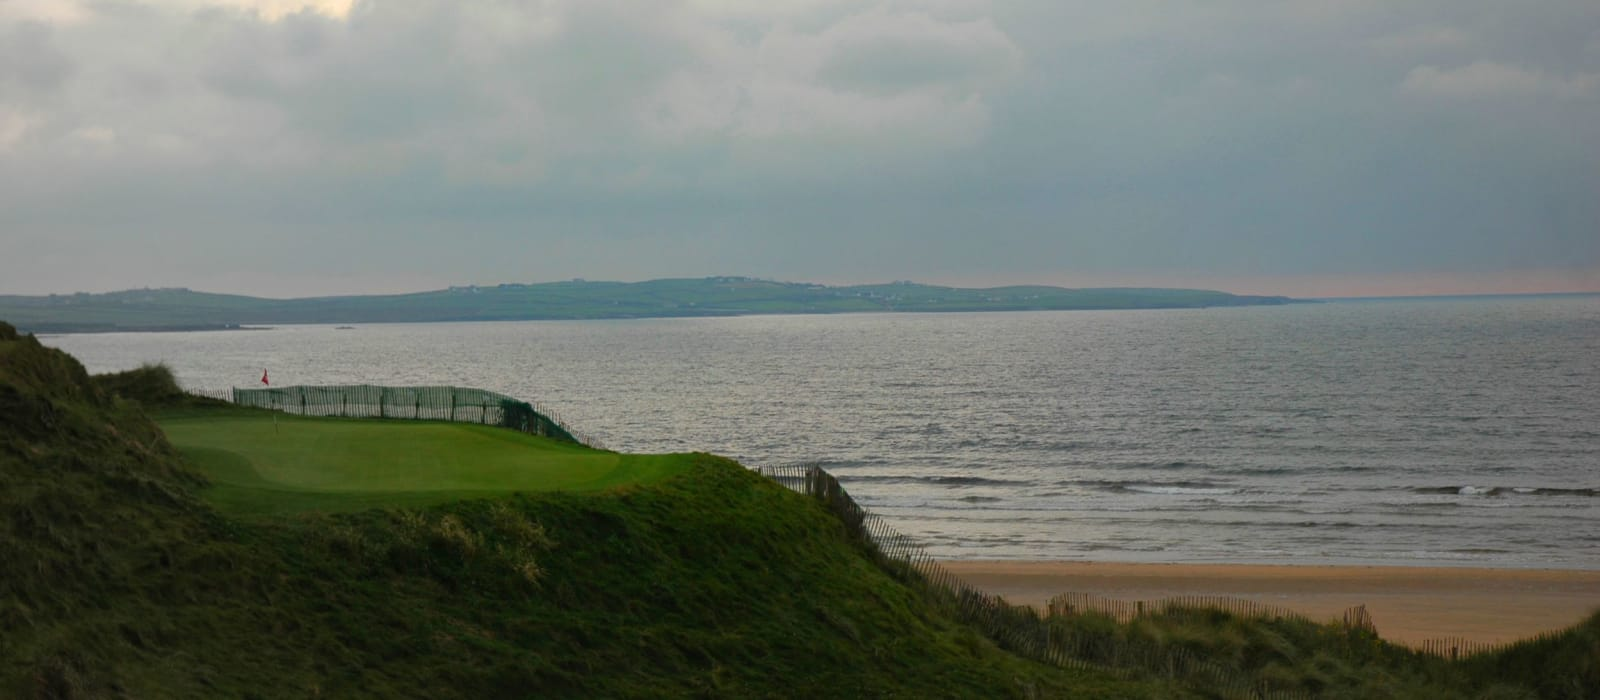 Submission to An Bord Pleanála regarding proposed coastal protection works at Trump International Golf Links Doonbeg